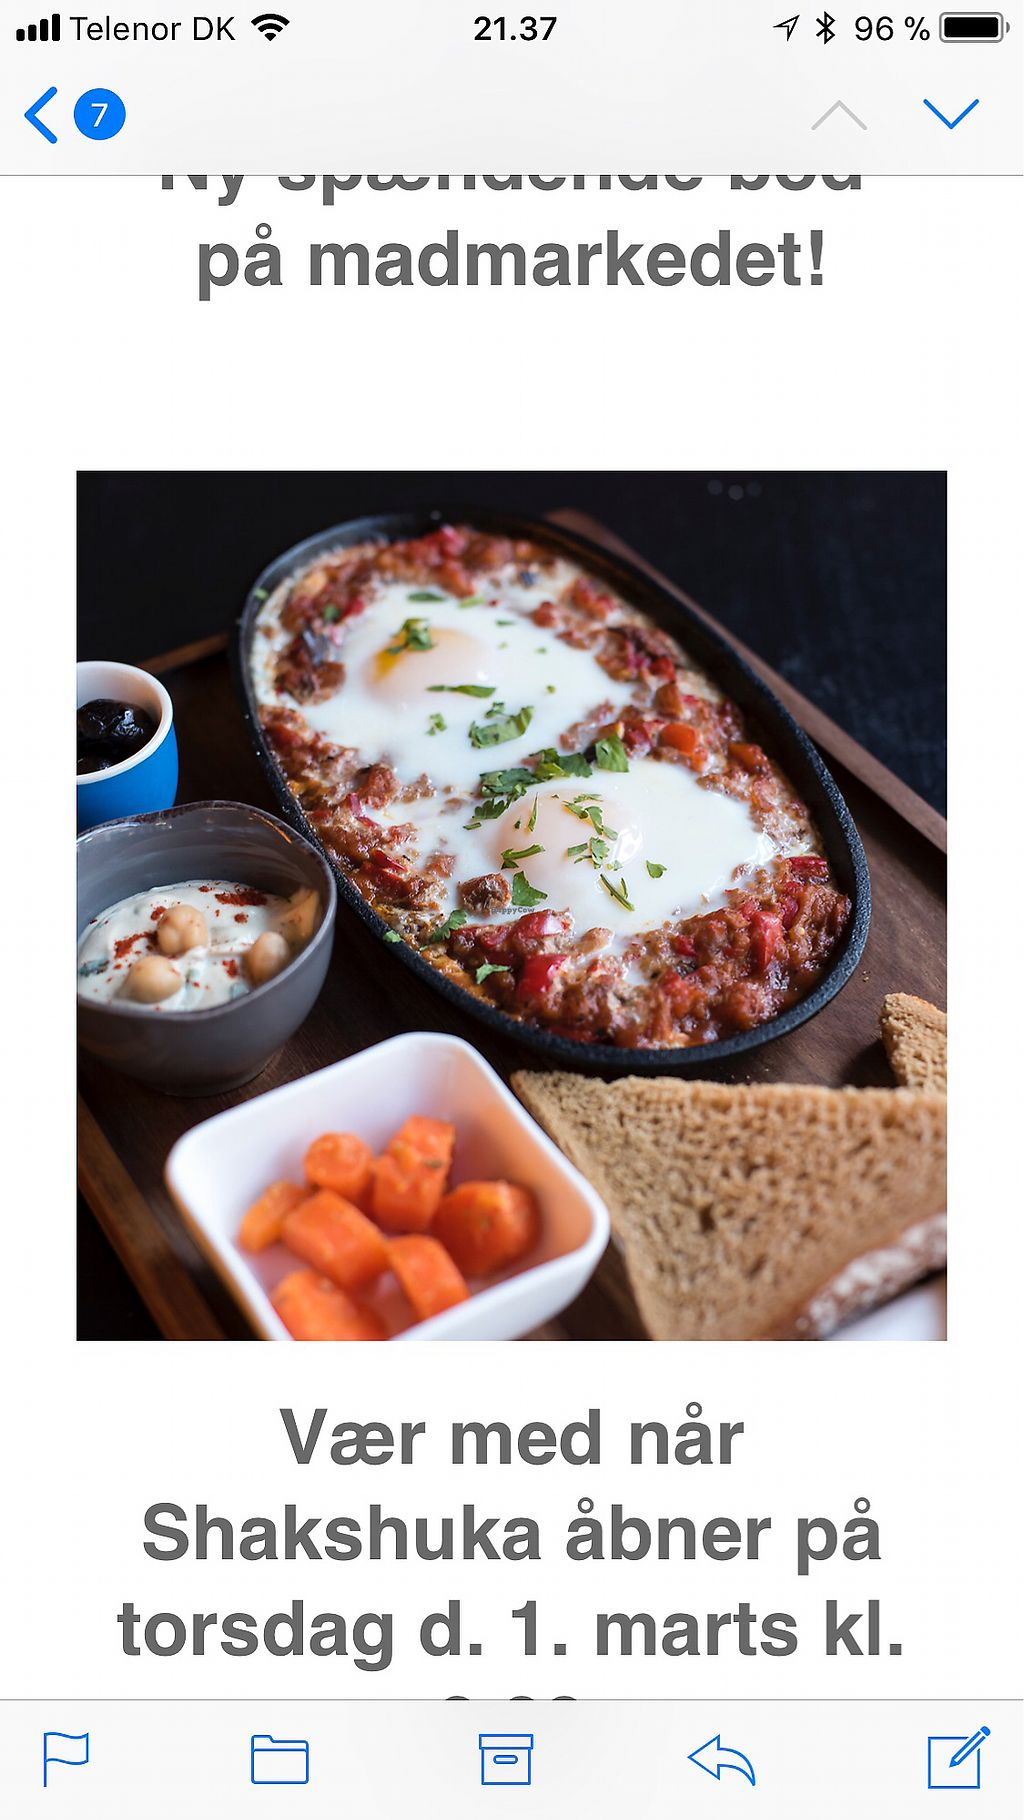 """Photo of Shakshuka  by <a href=""""/members/profile/Shakshuka"""">Shakshuka</a> <br/>Shakshuka <br/> April 14, 2018  - <a href='/contact/abuse/image/117638/385707'>Report</a>"""